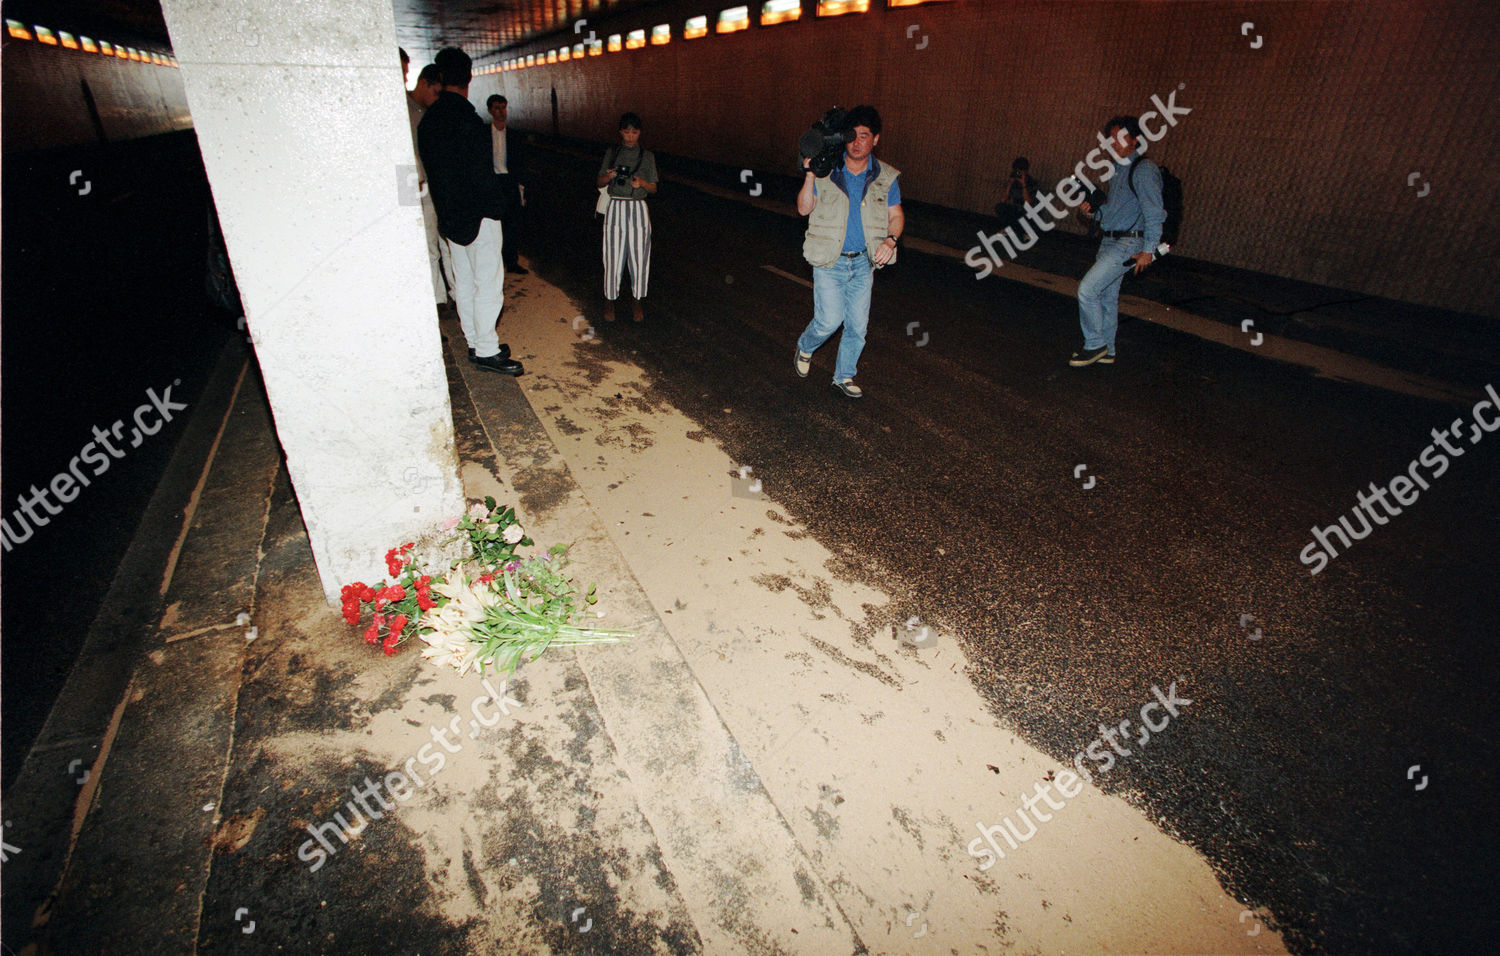 site car crash which killed princess diana editorial stock photo stock image shutterstock https www shutterstock com editorial image editorial the death of princess diana paris france sep 1997 278250r